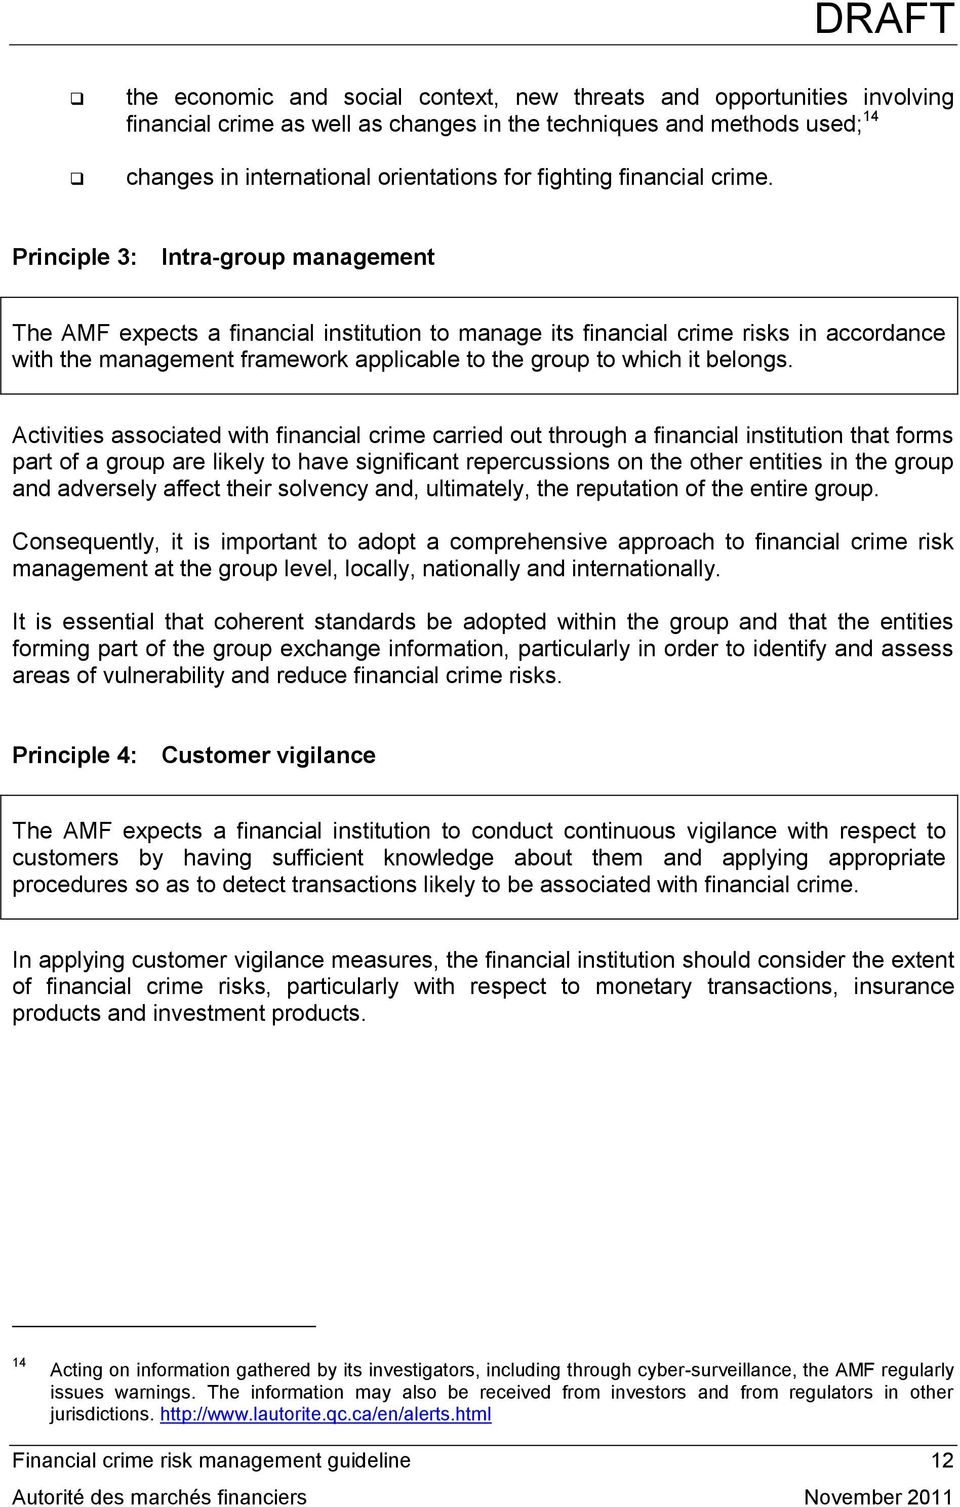 Principle 3: Intra-group management The AMF expects a financial institution to manage its financial crime risks in accordance with the management framework applicable to the group to which it belongs.